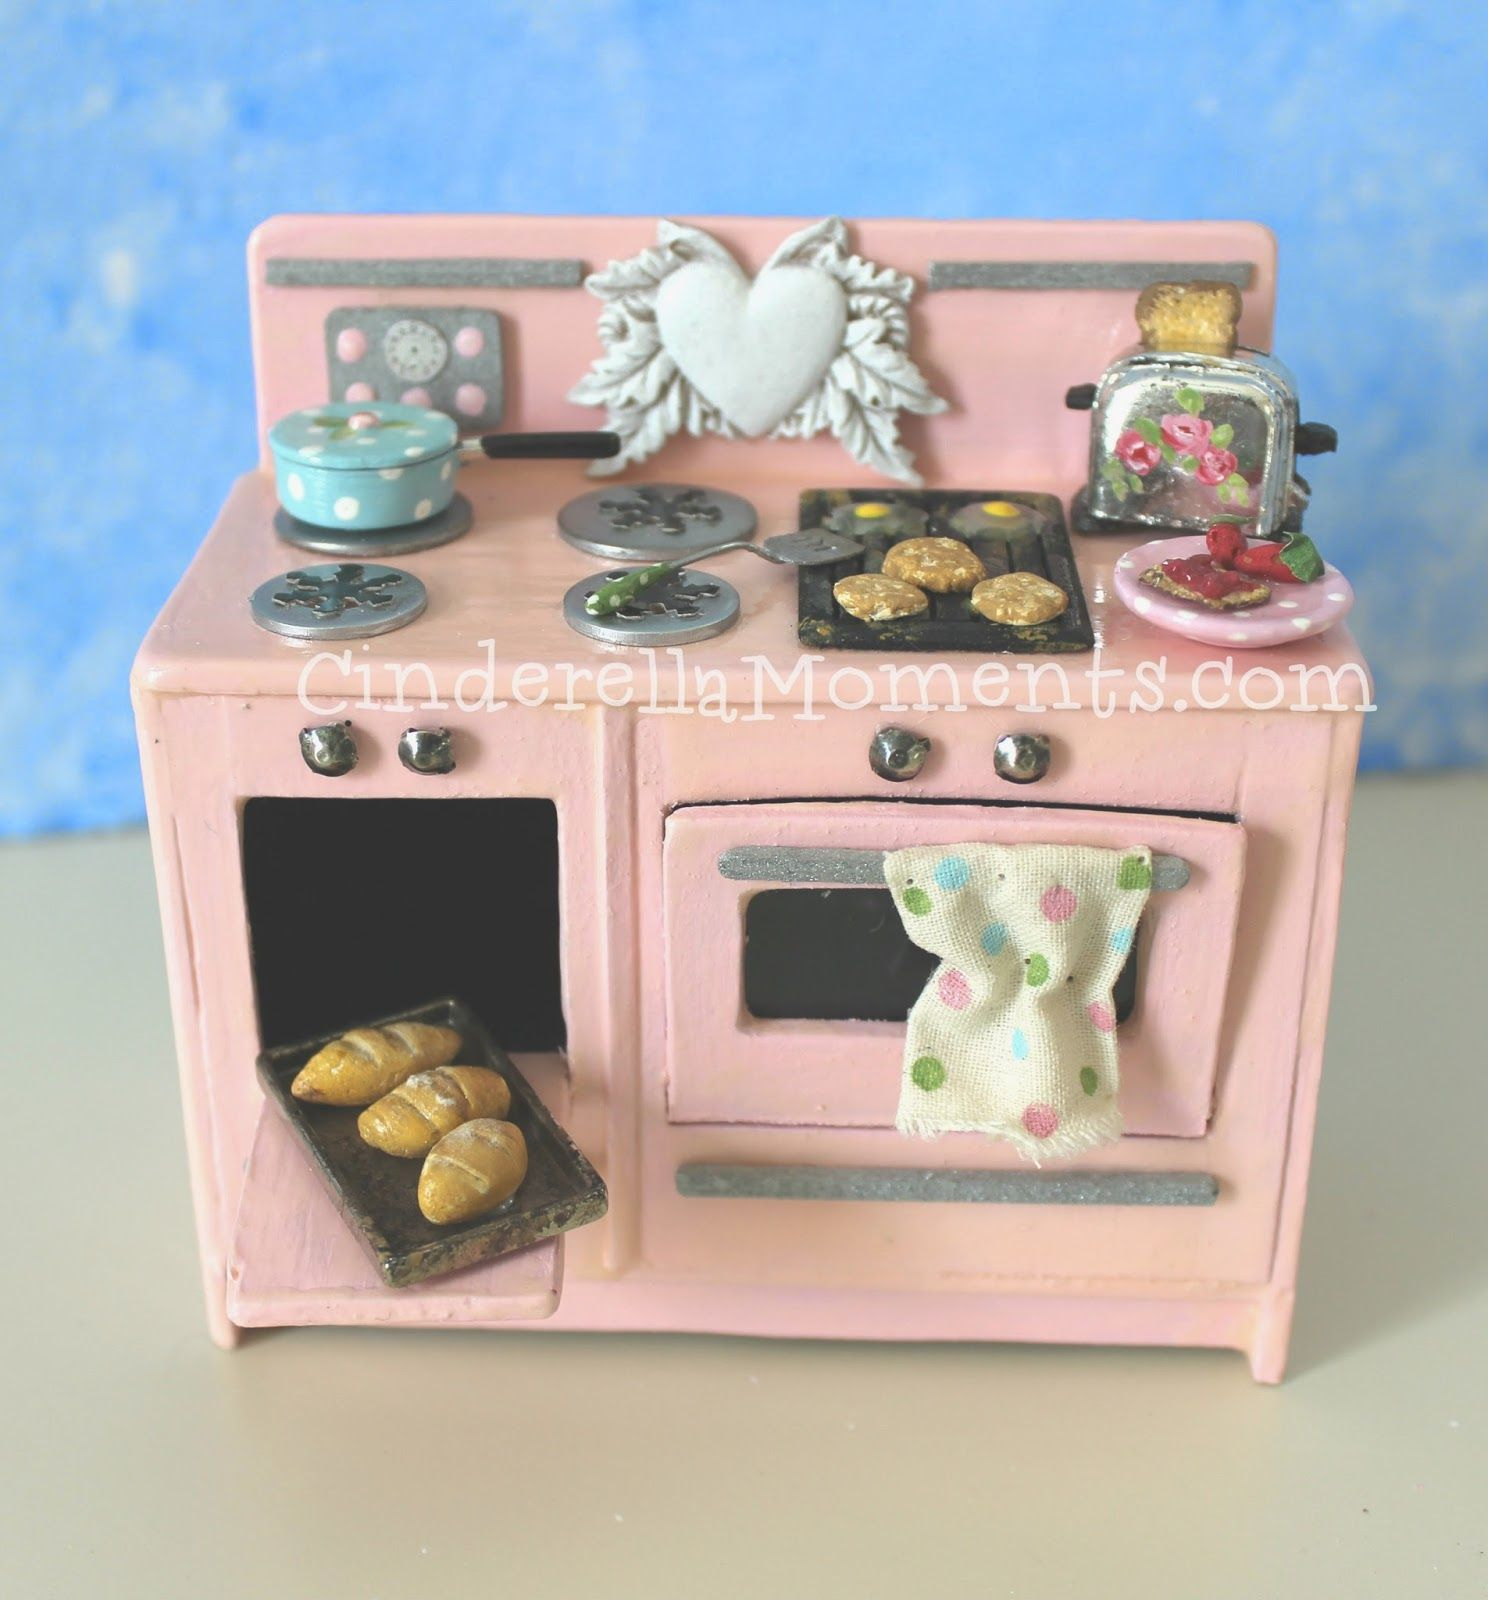 Cooking Range Tutorial #dollhouseminiaturetutorials Cooking Range Tutorial #dollhouseminiaturetutorials